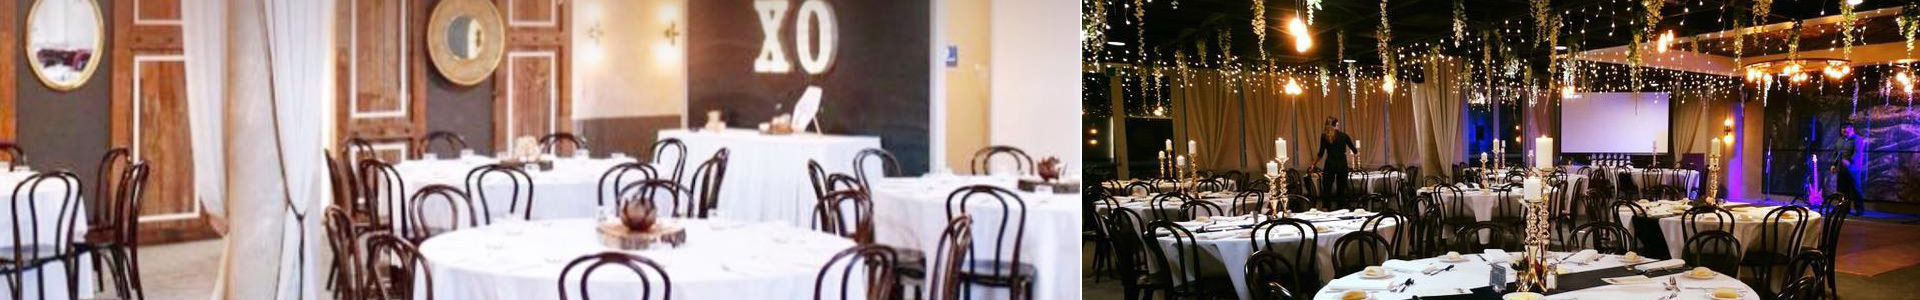 Tide Cafe Townsville Functions Venue Hire